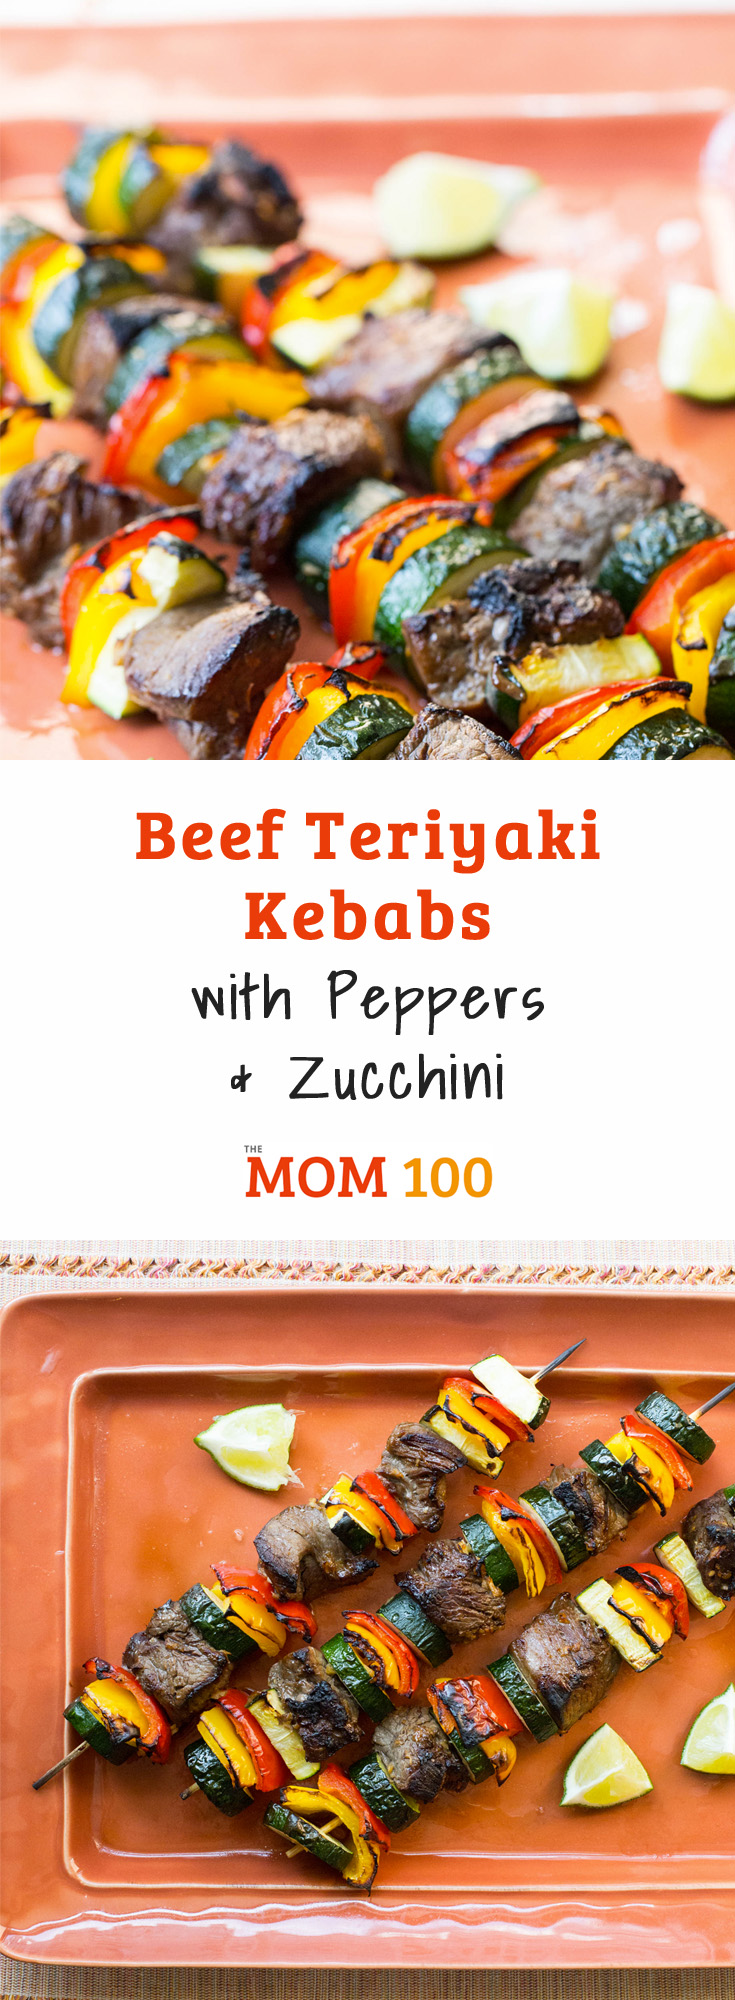 Beef Teriyaki Kebabs with Peppers and Zucchini